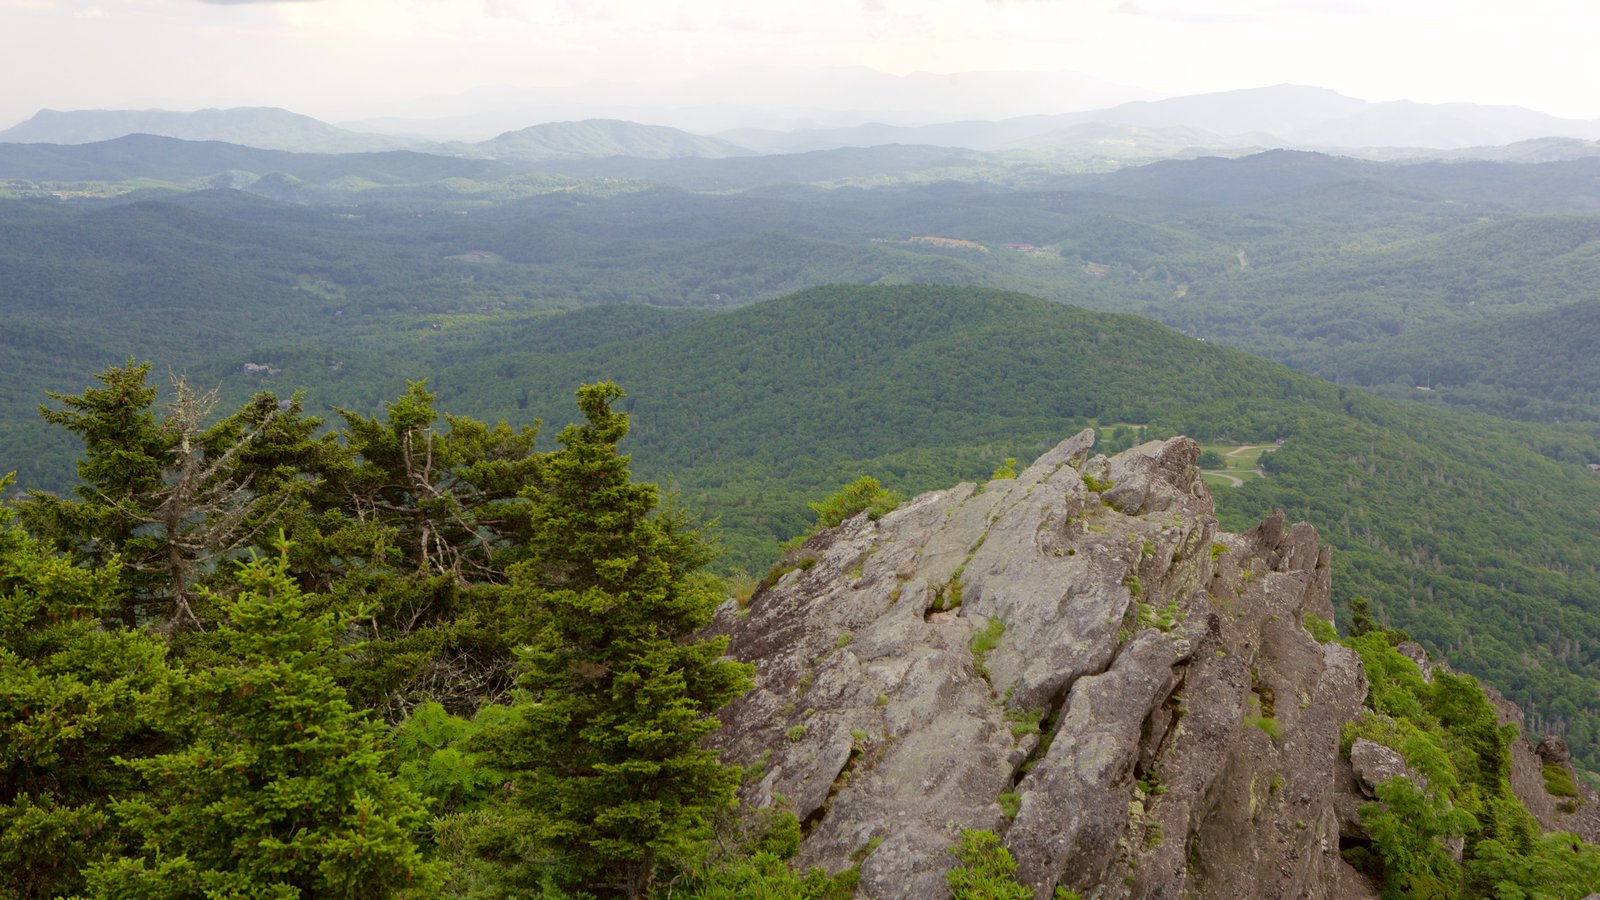 Grandfather Mountain which includes tranquil scenes, forest scenes and landscape views